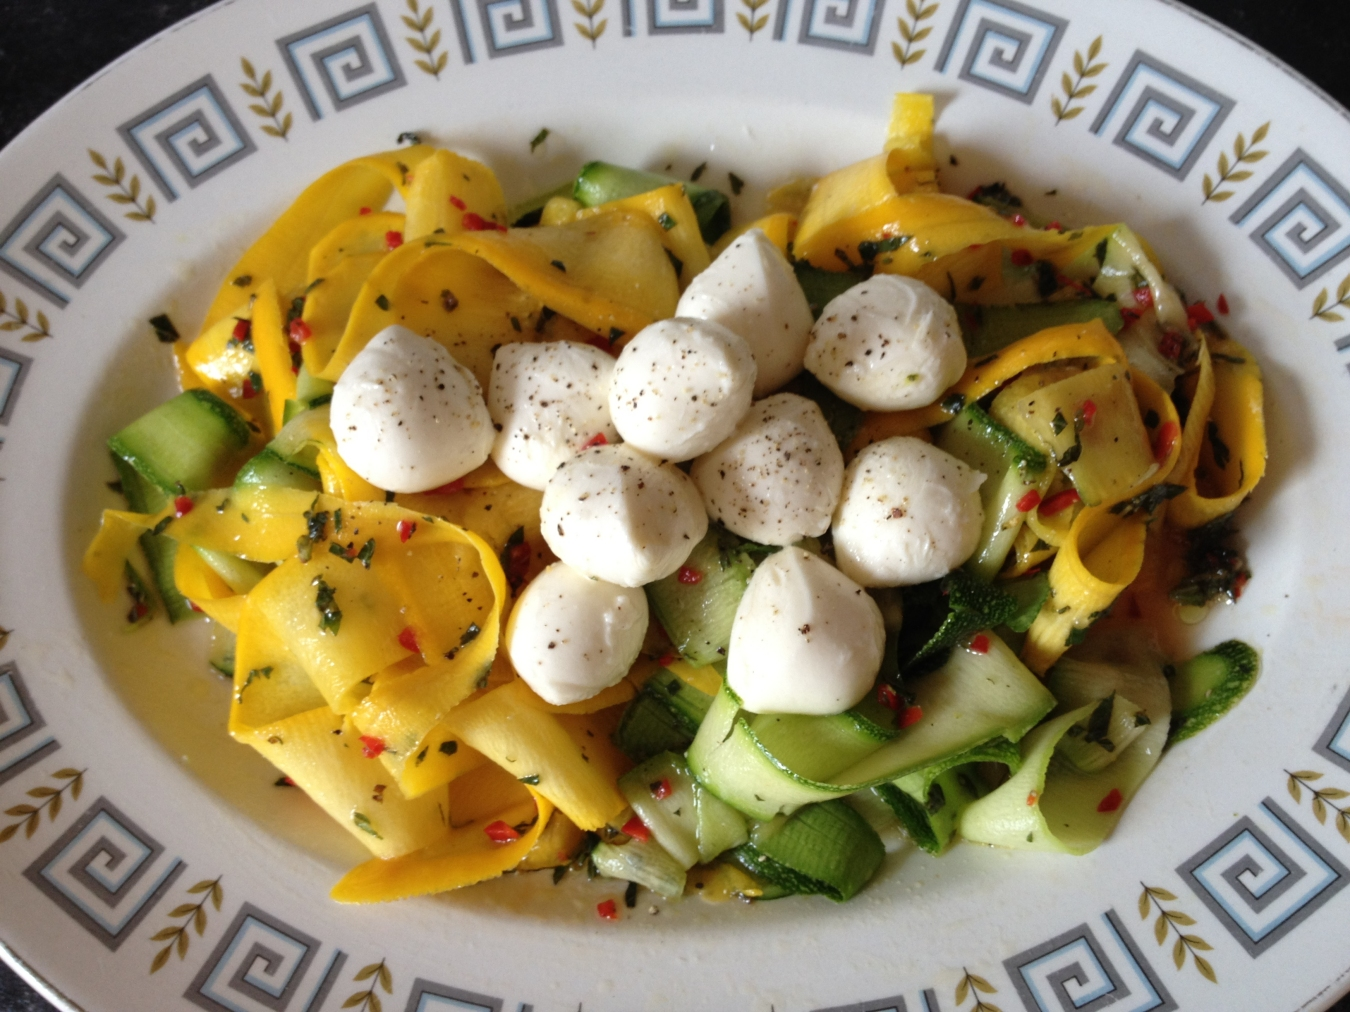 Chef mels kitchen recipe jamie olivers courgette and boccocini salad this is a lovely little salad recipe that nick made me last week after wed both seen jamie oliver make it on his 30 minute meals program forumfinder Gallery